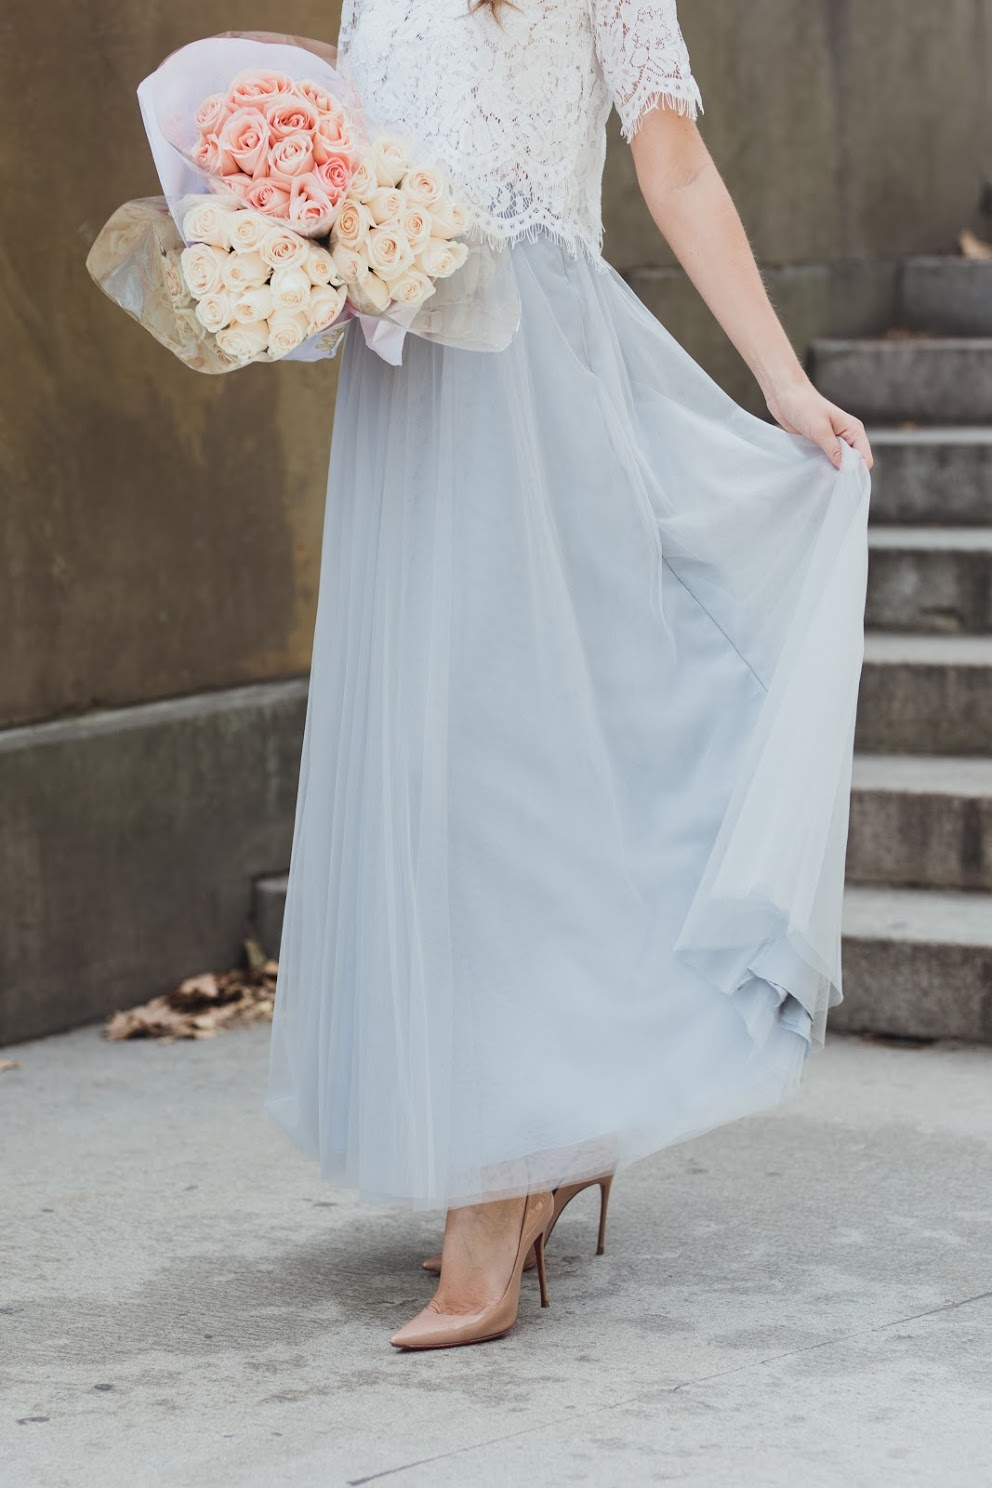 Finding The Perfect Bridesmaid Dresses - Tayler Malott